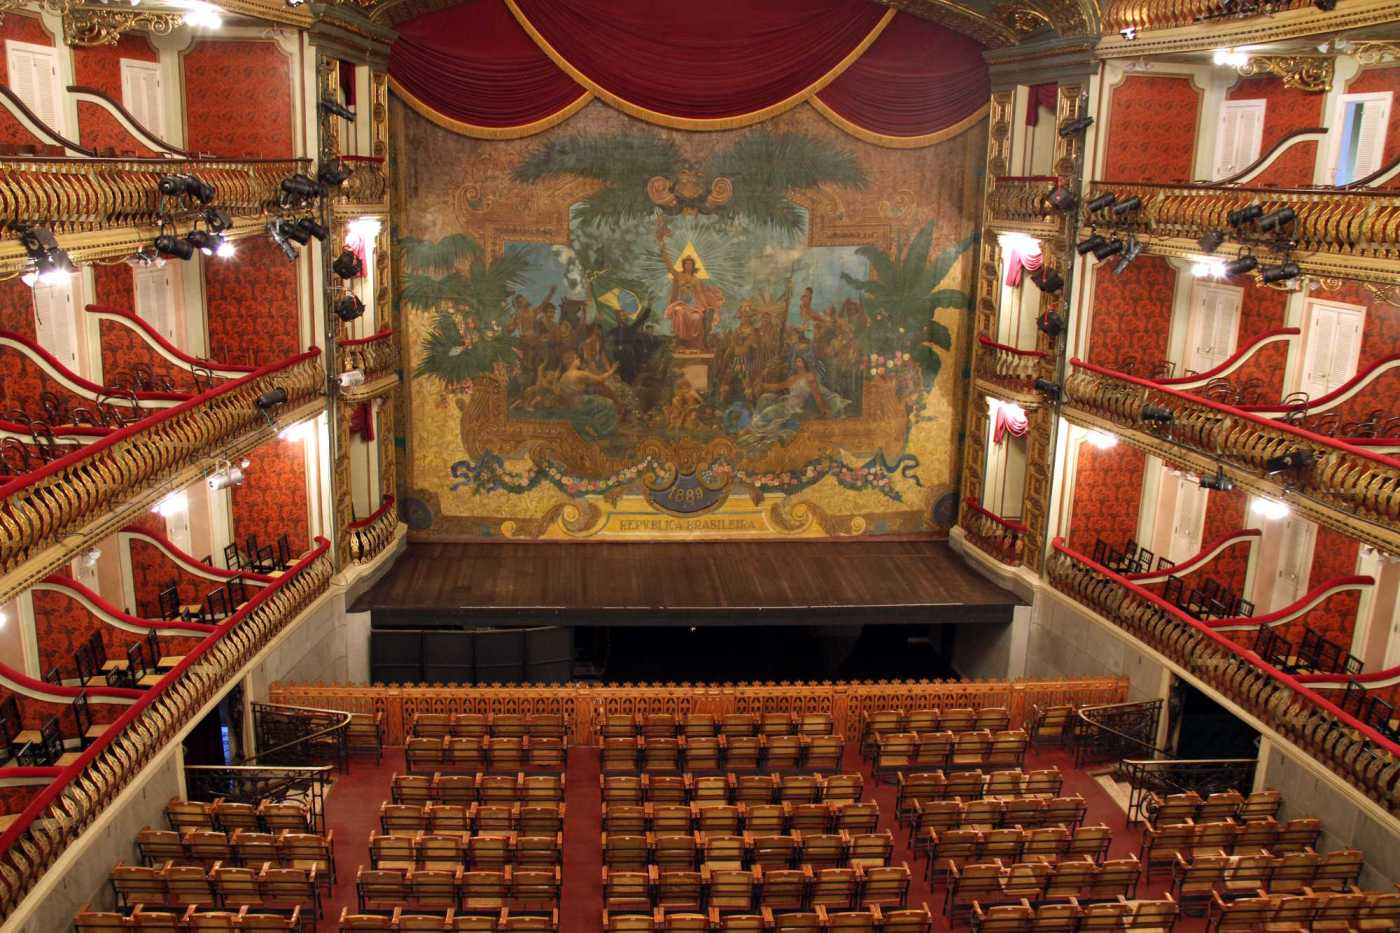 Theatro da Paz, em Belém, capital do Pará (foto: Eduardo Vessoni)